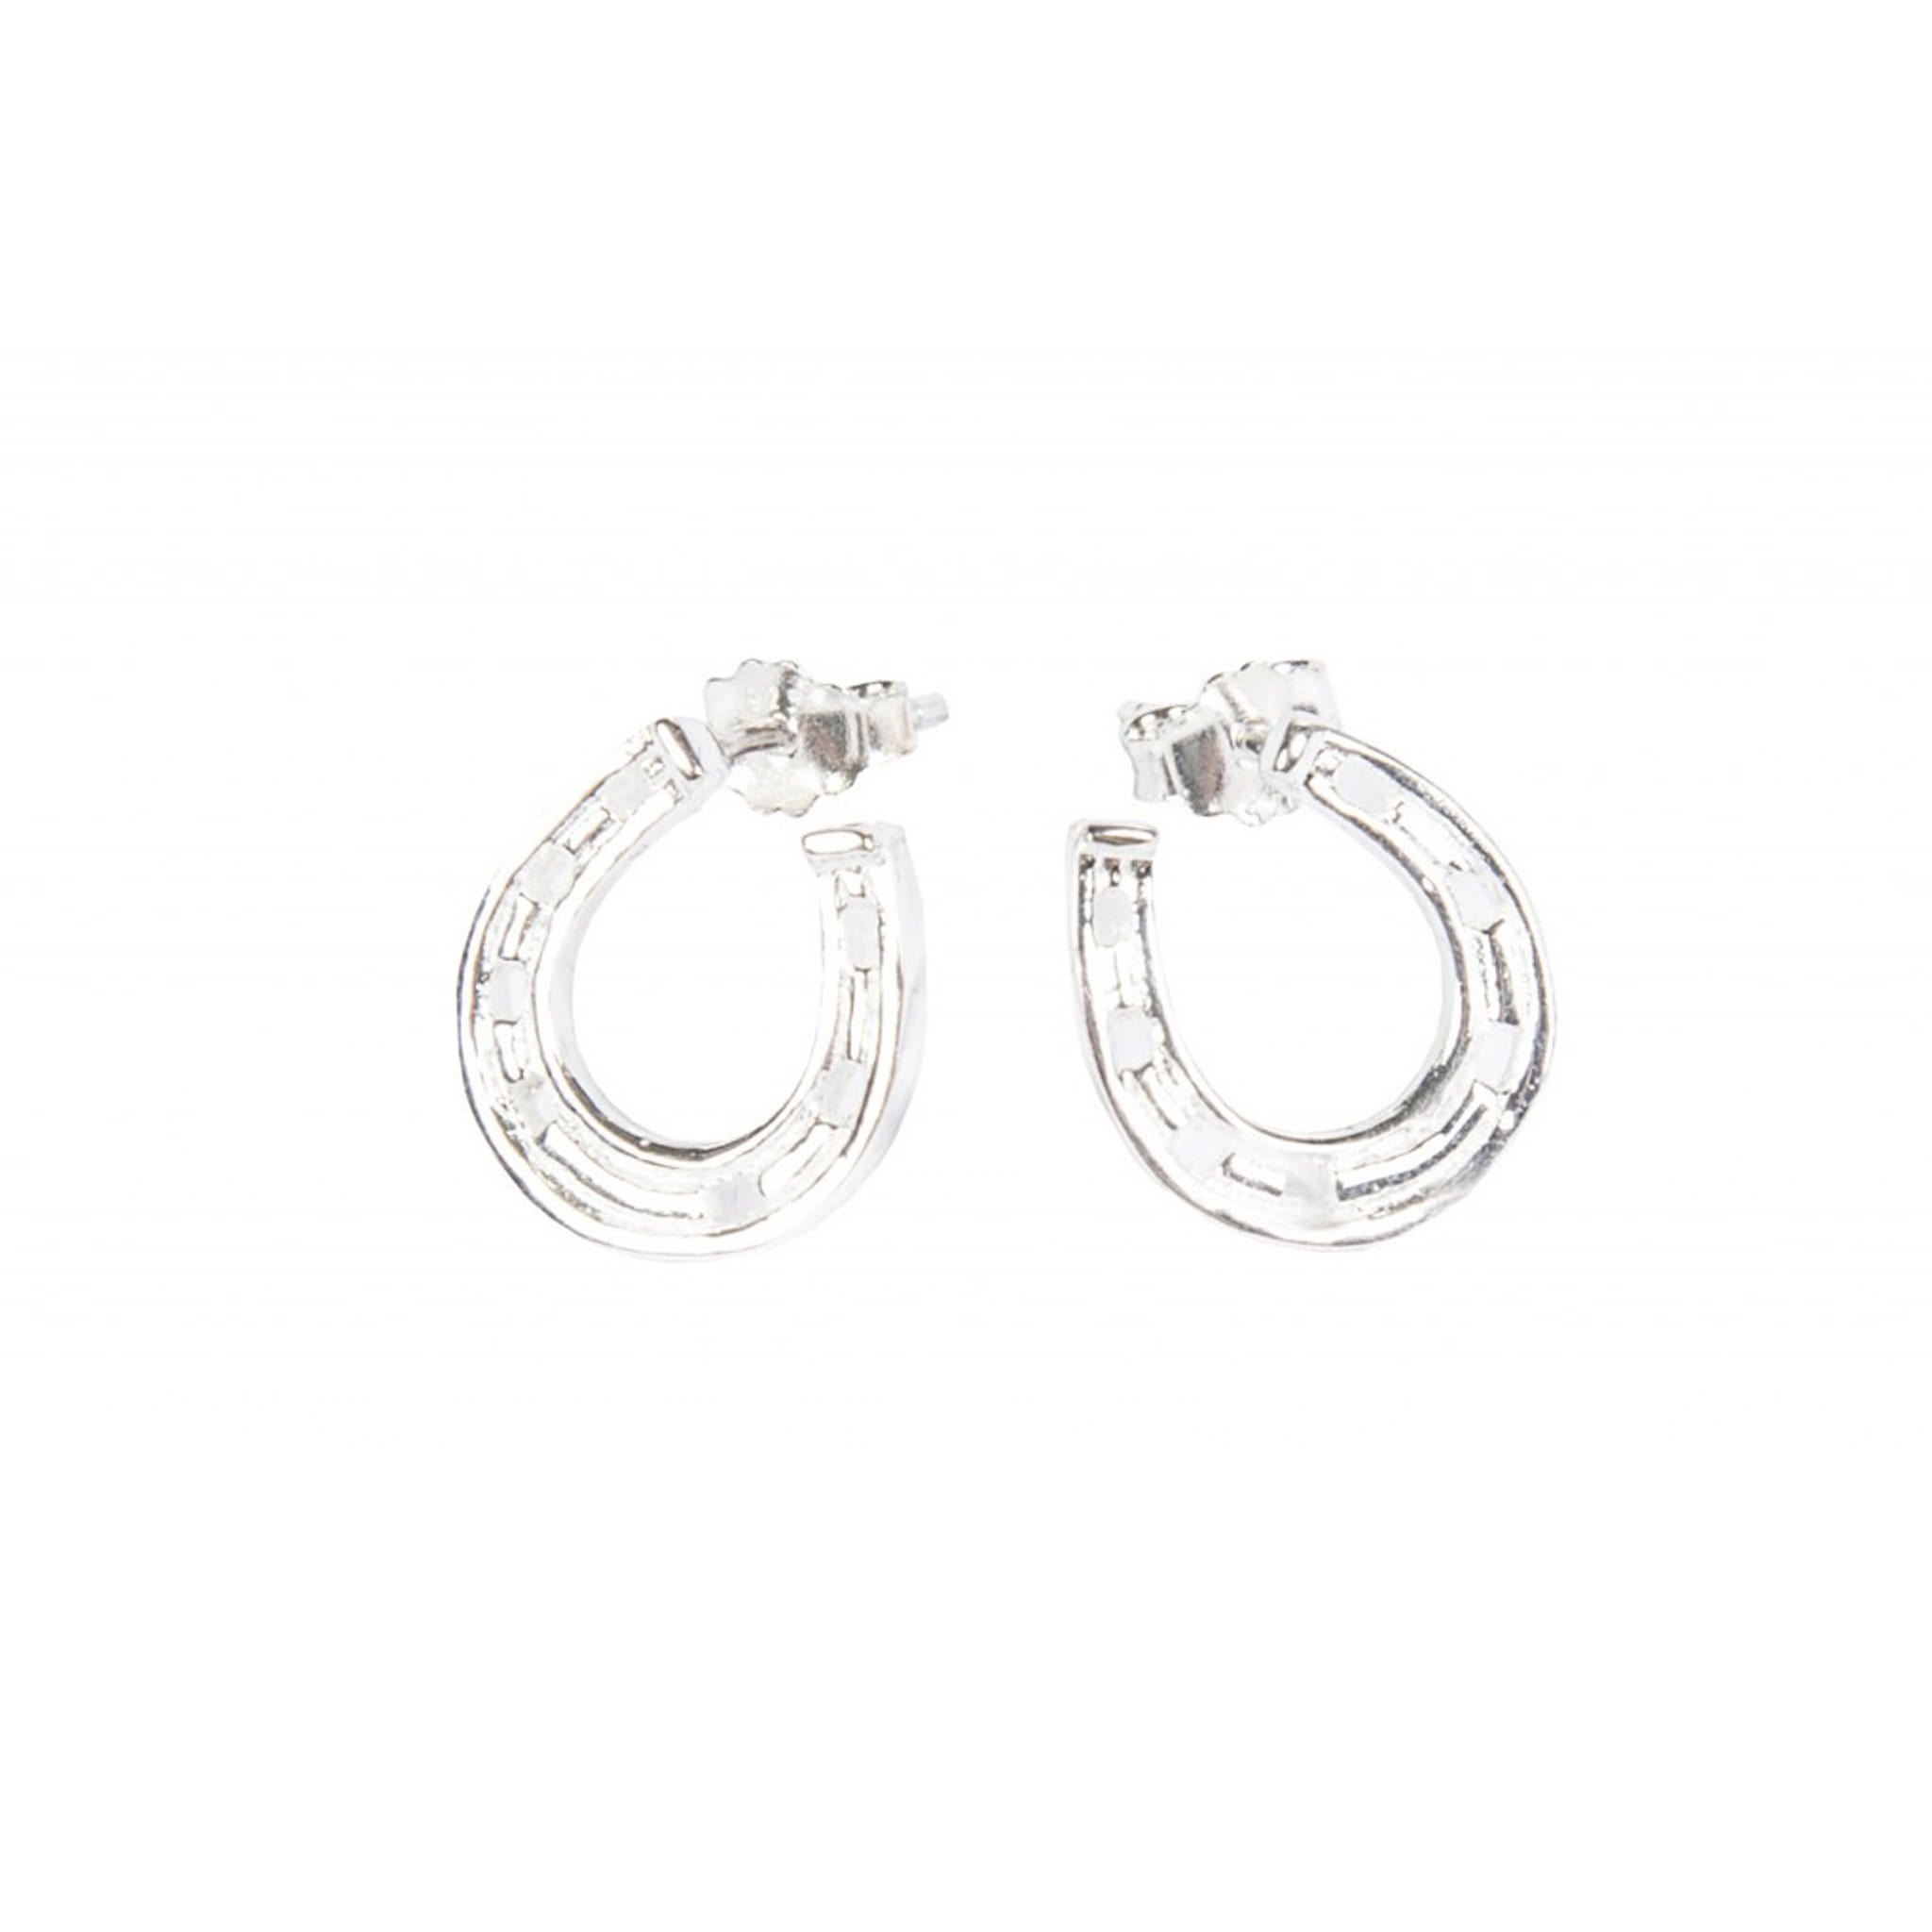 HKM Stirling Silver Horseshoe Earrings